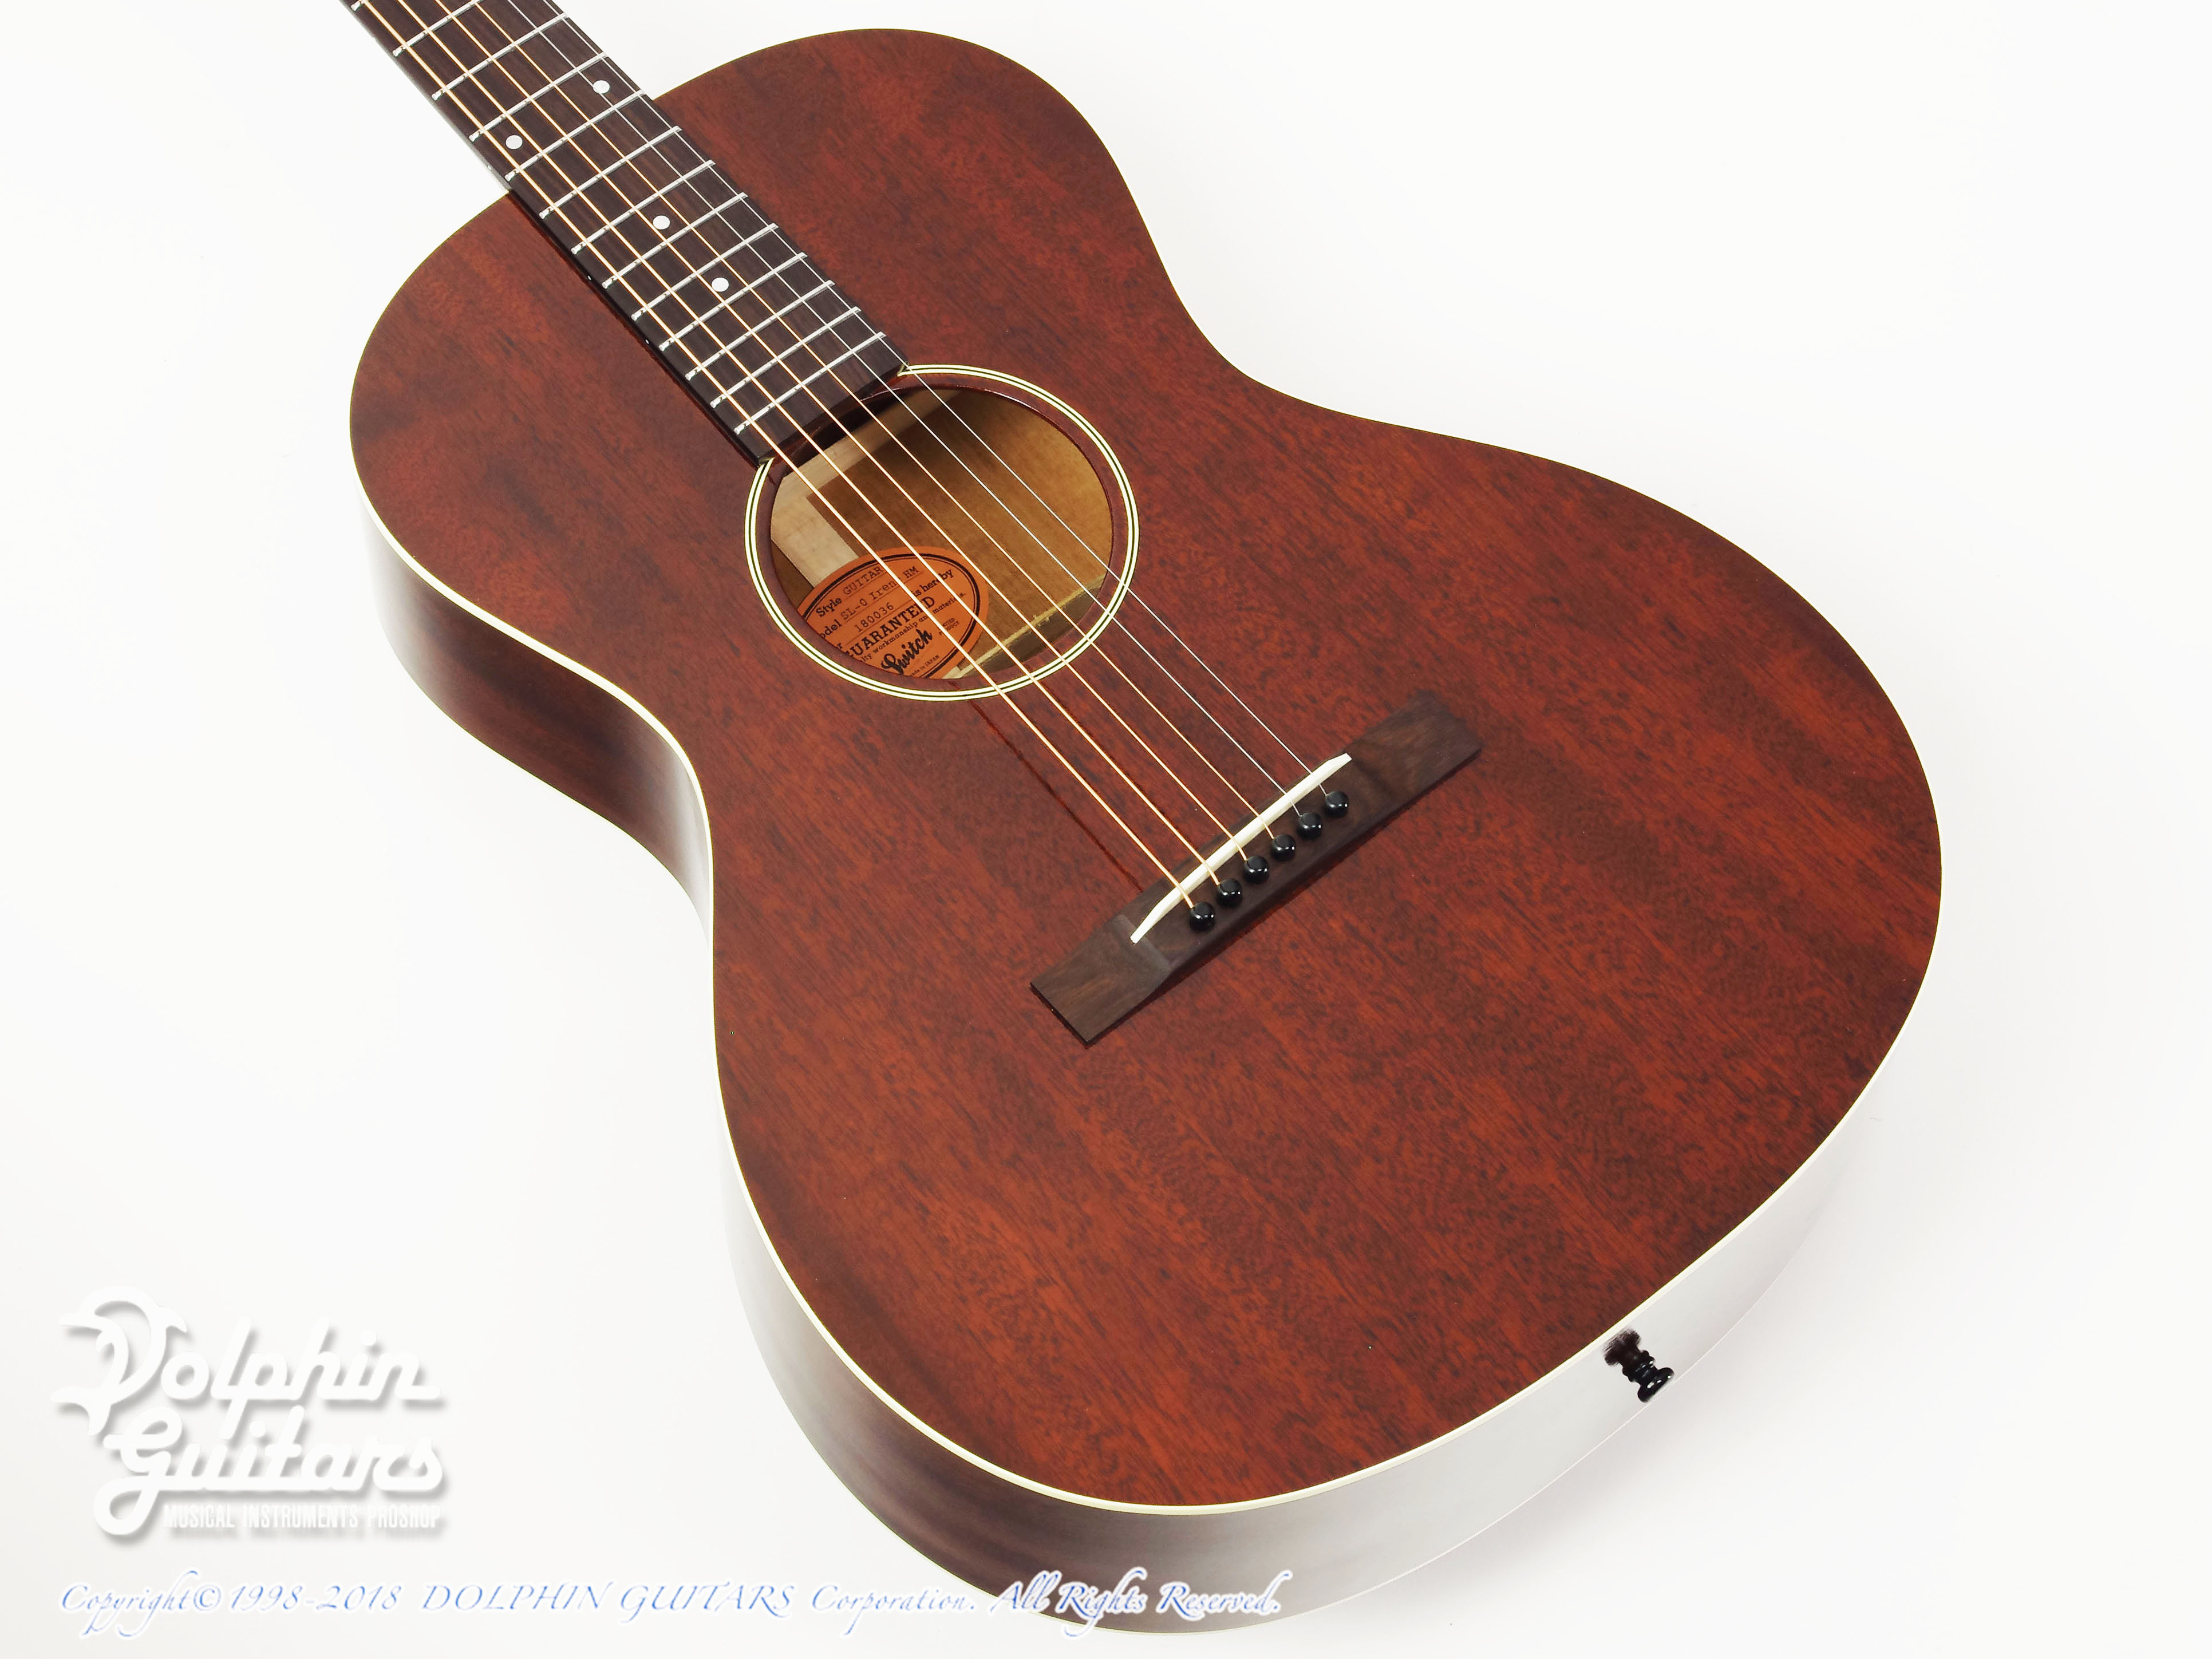 SWITCH:SL-0 Irene HM (All Honduran Mahogany)